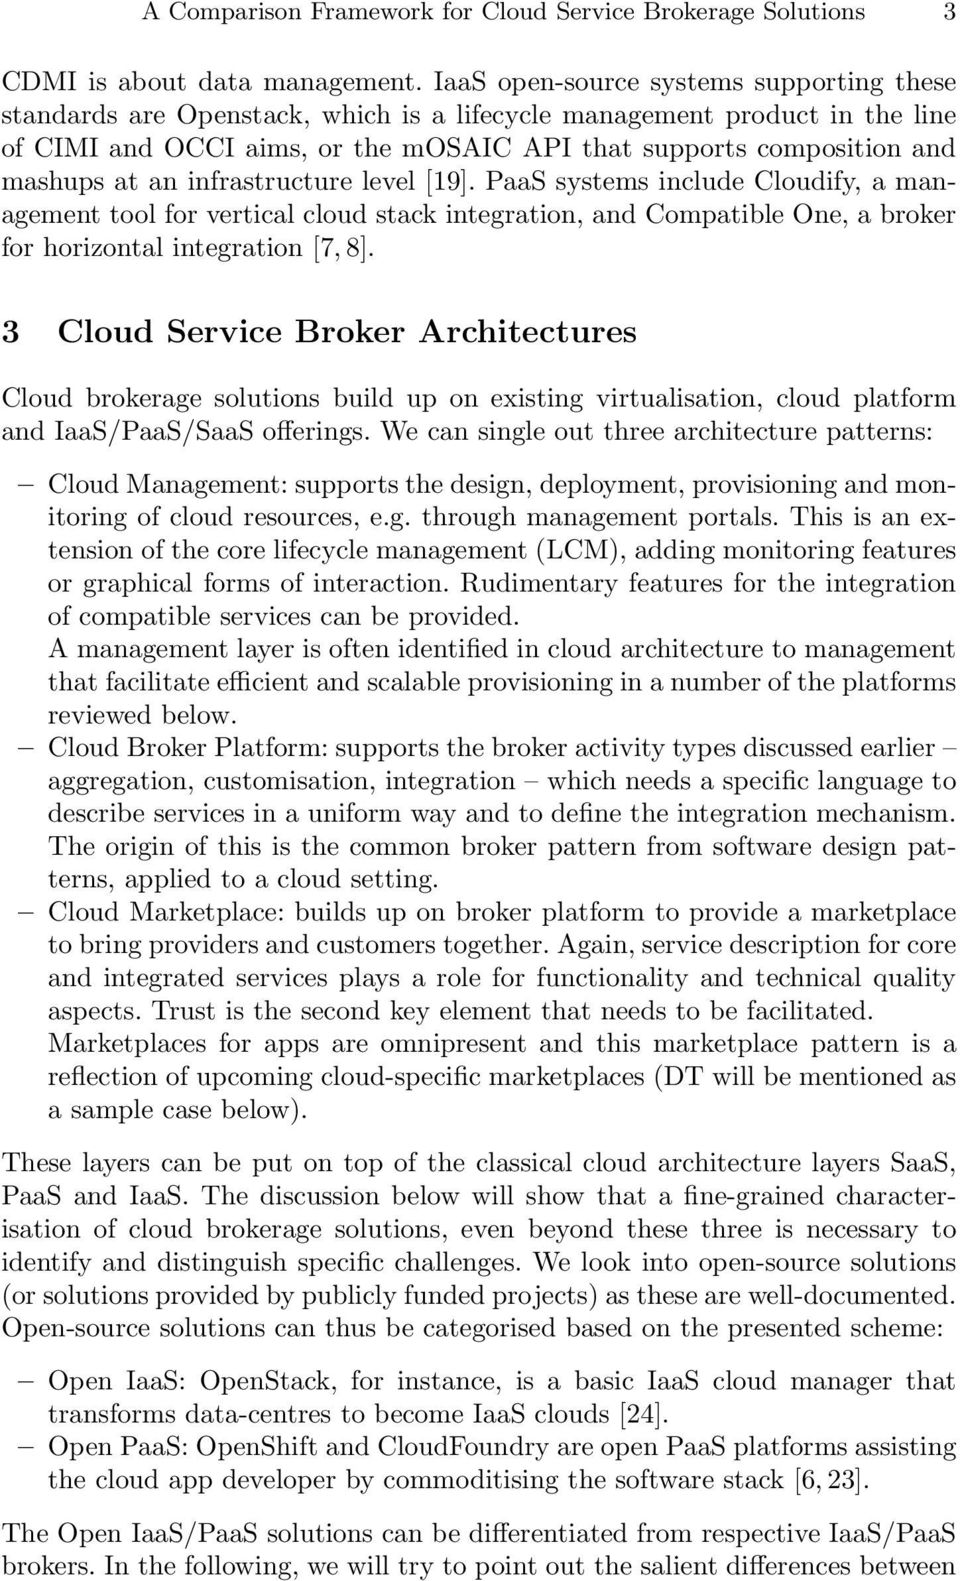 at an infrastructure level [19]. PaaS systems include Cloudify, a management tool for vertical cloud stack integration, and Compatible One, a broker for horizontal integration [7, 8].